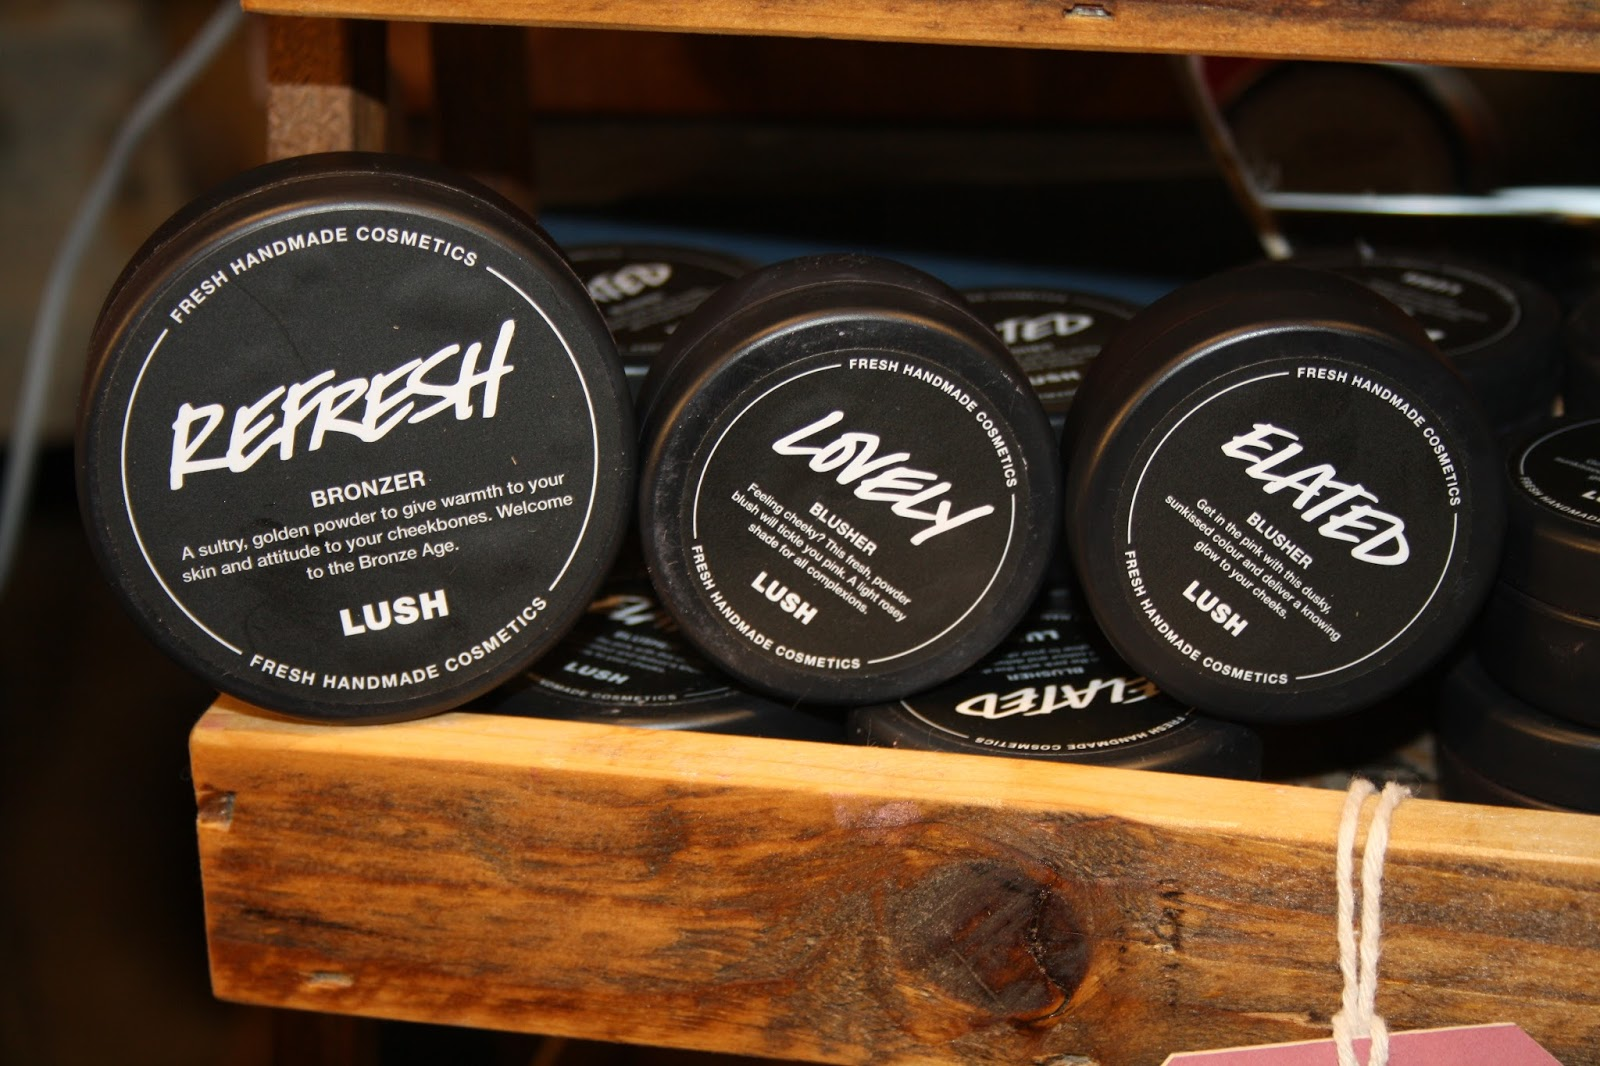 Lush Oxford Street Store Grand Opening